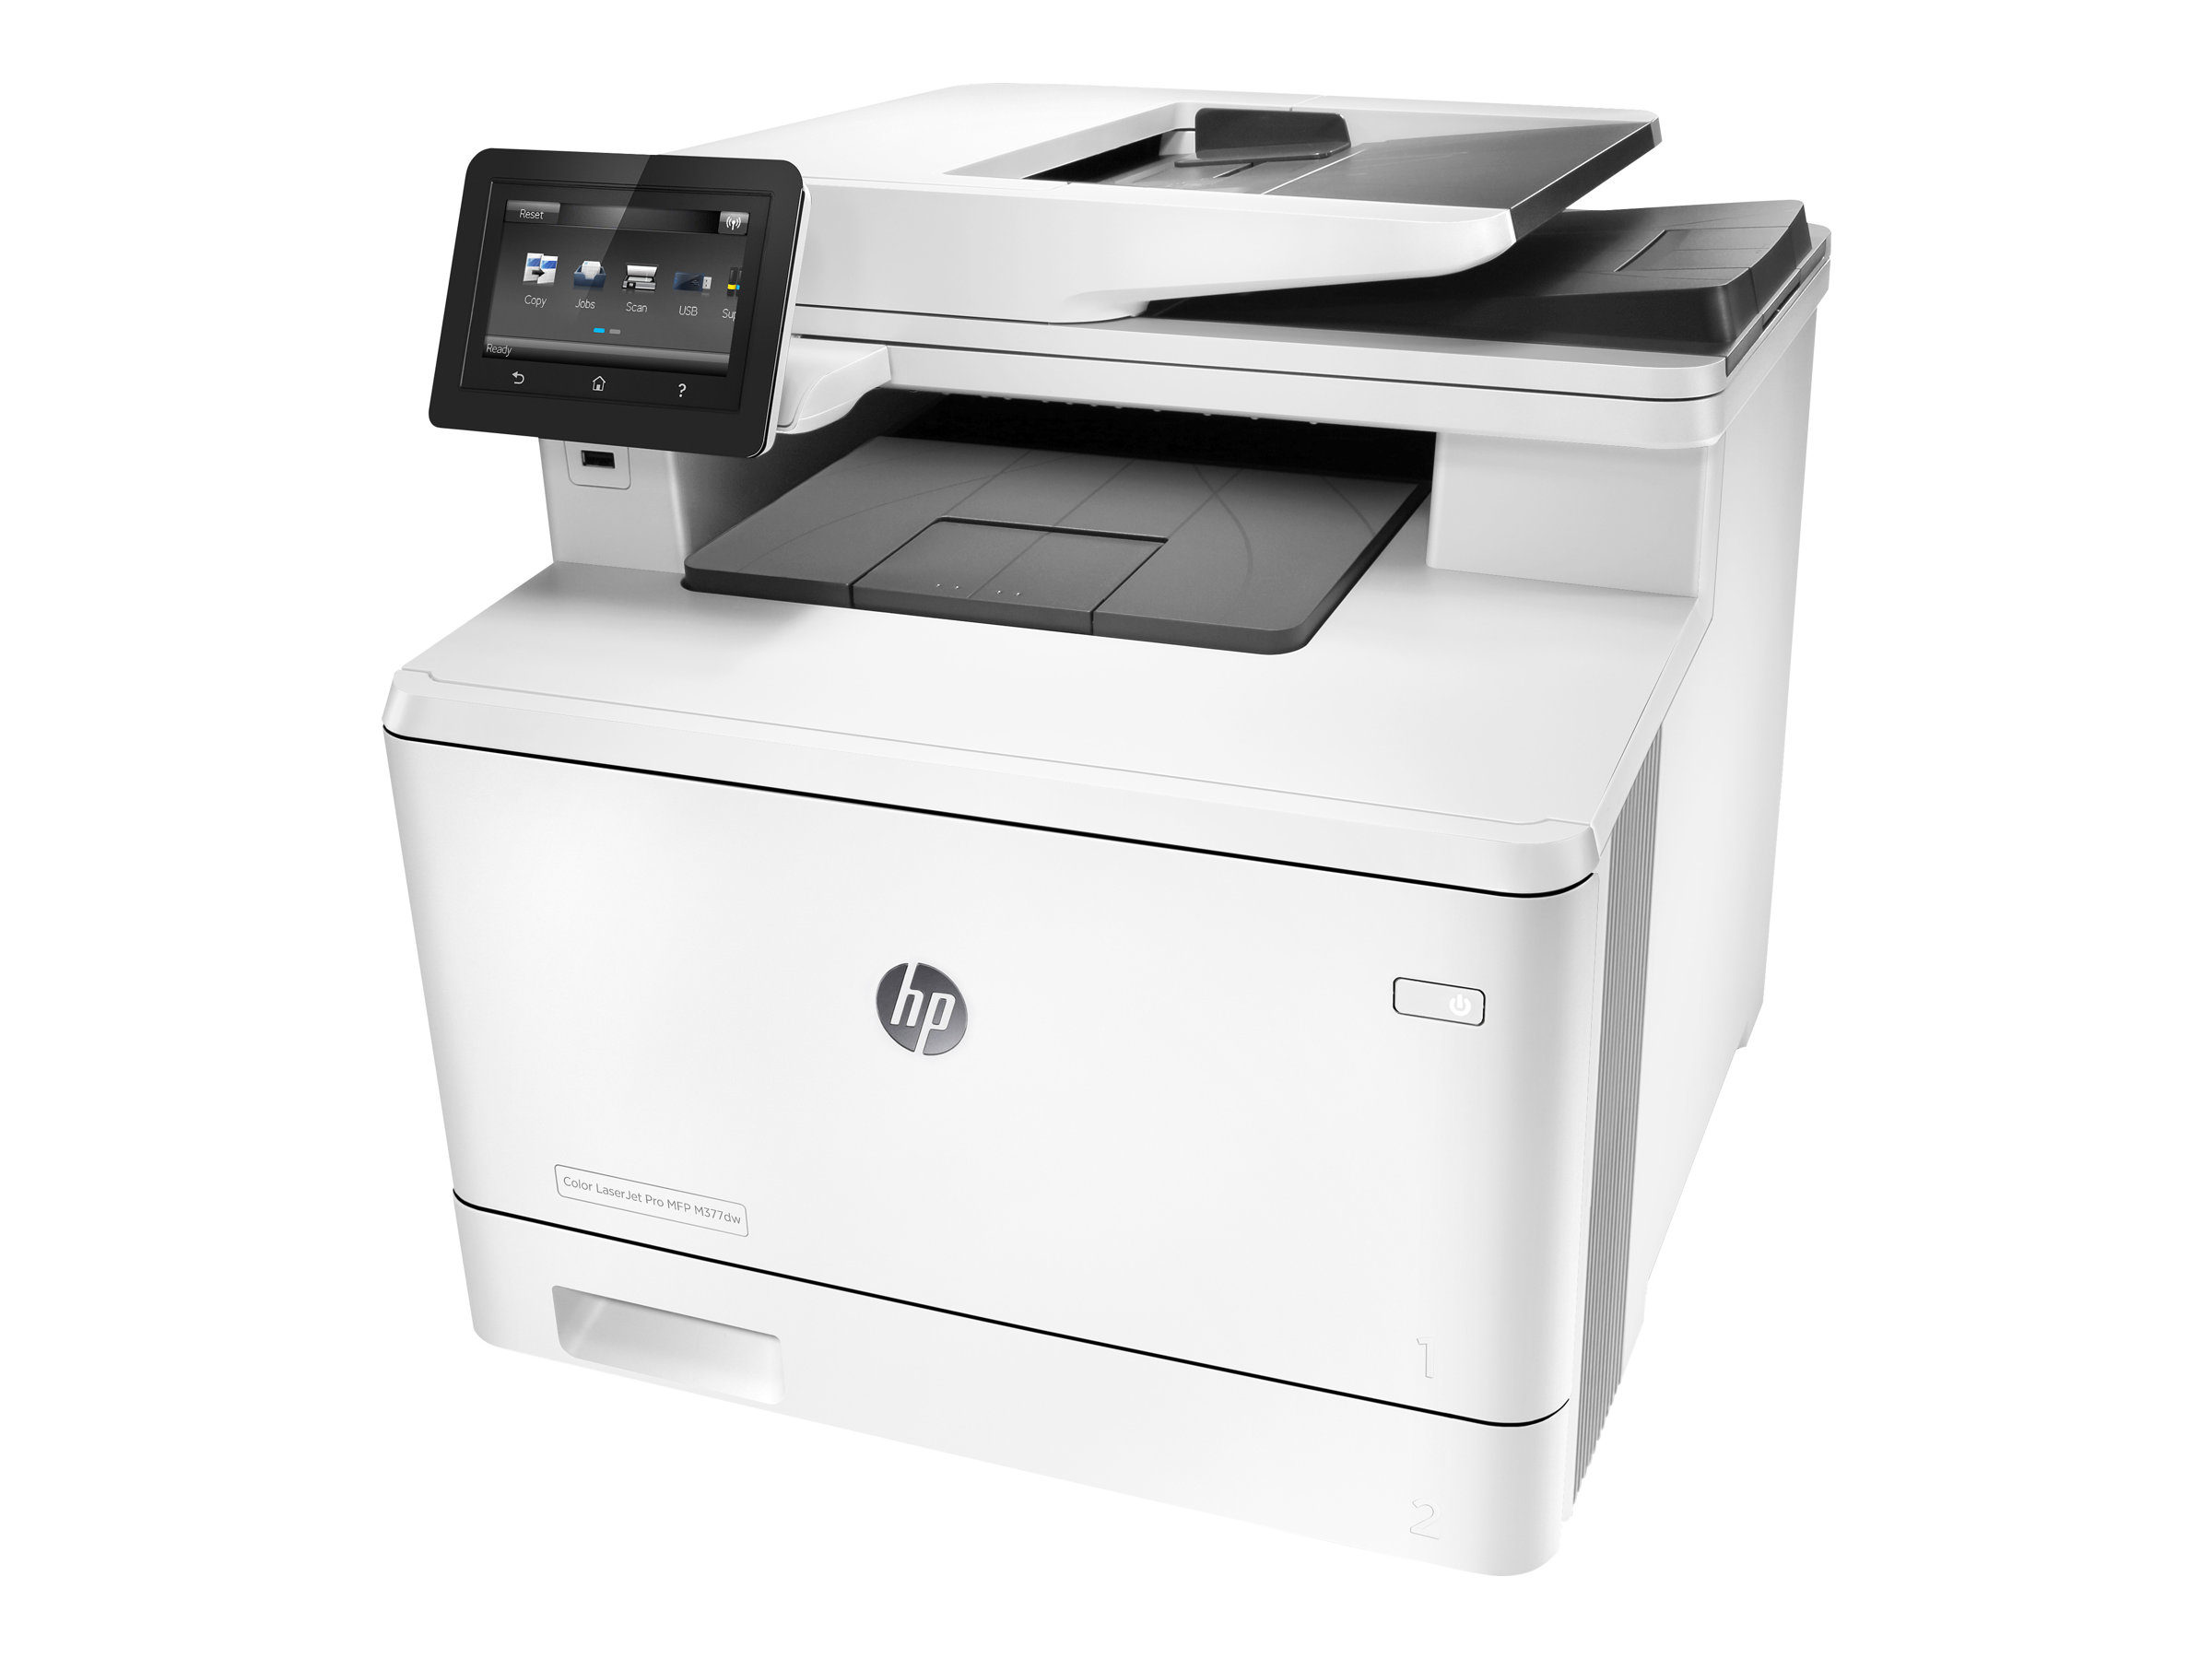 hp laserjet pro mfp m377dw imprimante multifonctions couleur imprimantes jet d 39 encre. Black Bedroom Furniture Sets. Home Design Ideas